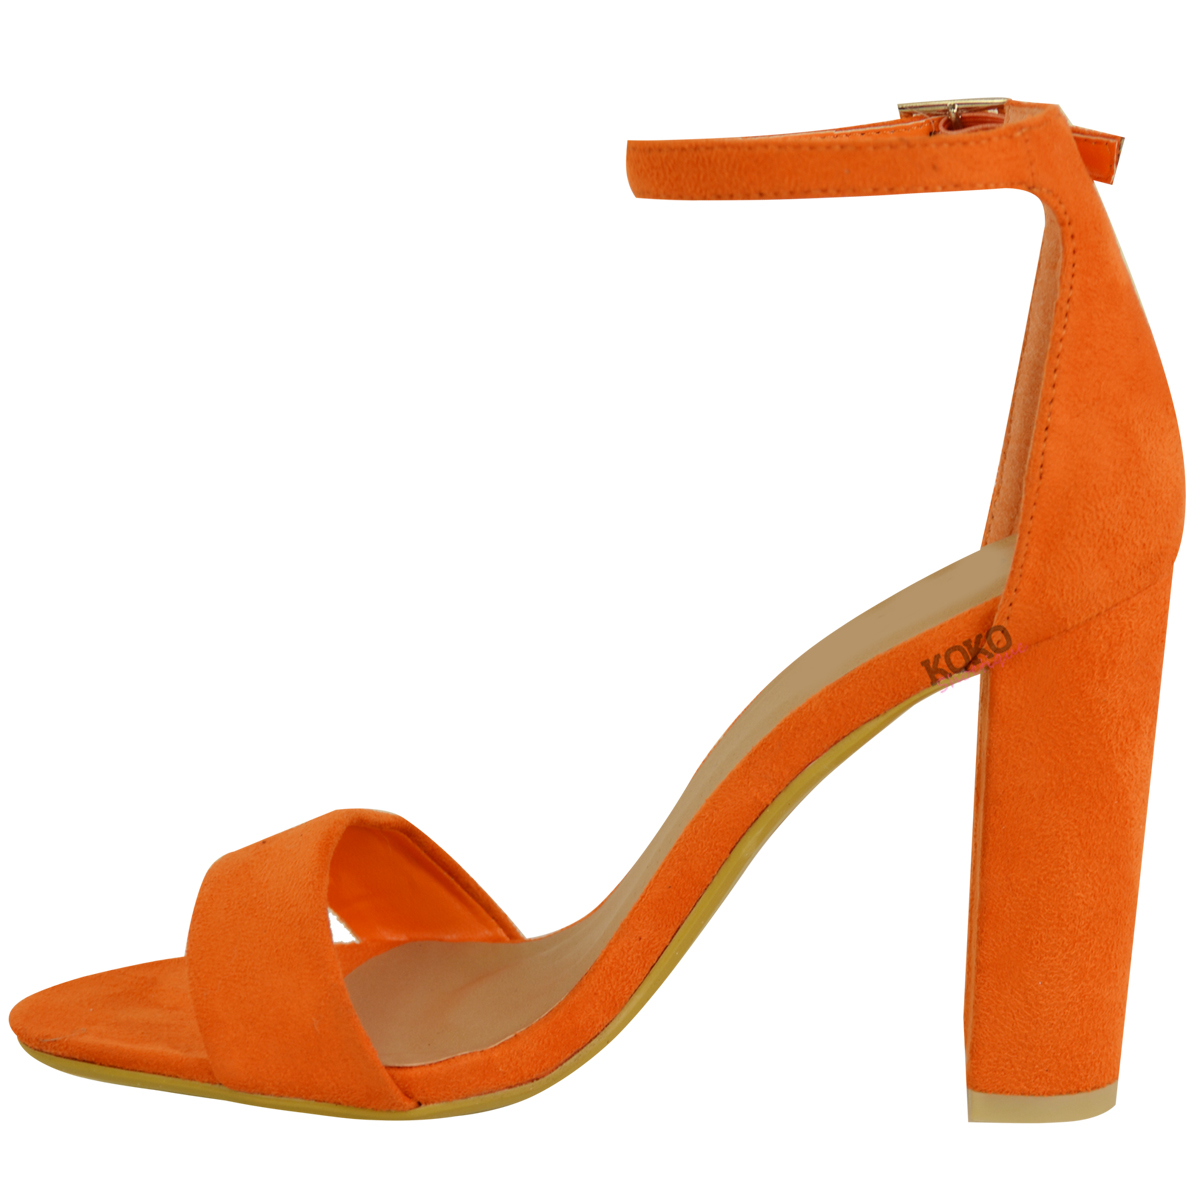 Womens-Ladies-Block-High-Heels-Ankle-Strap-Sexy-Open-Toe-Sandals-Shoes-Size-New miniatuur 35